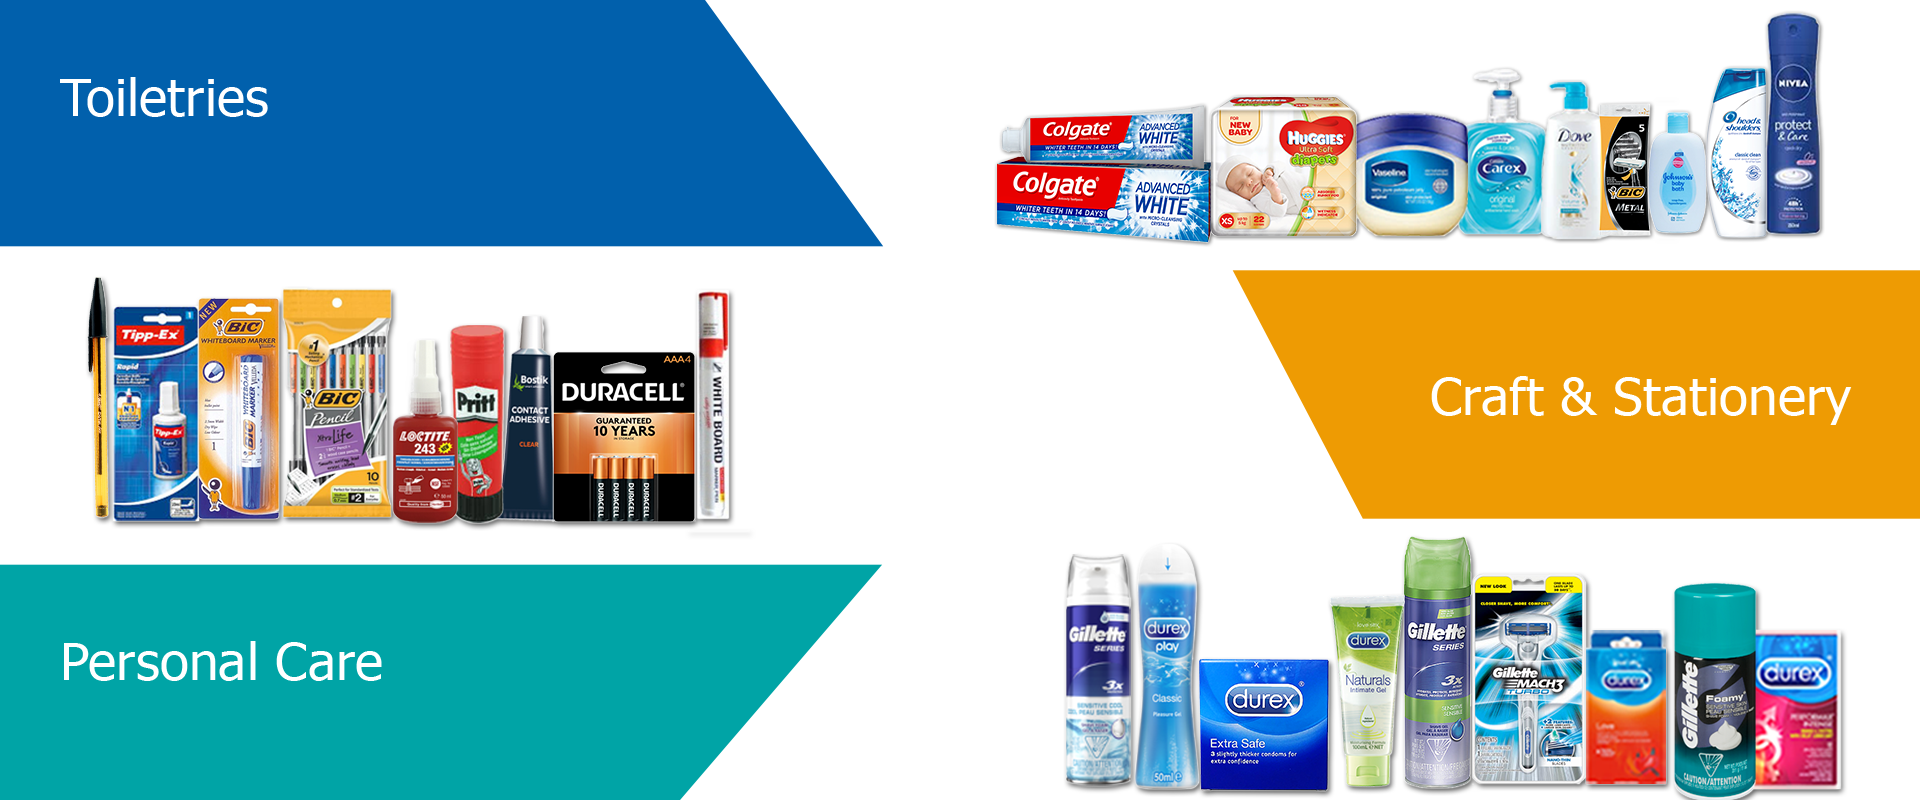 FMCG Wholesale Products in UK